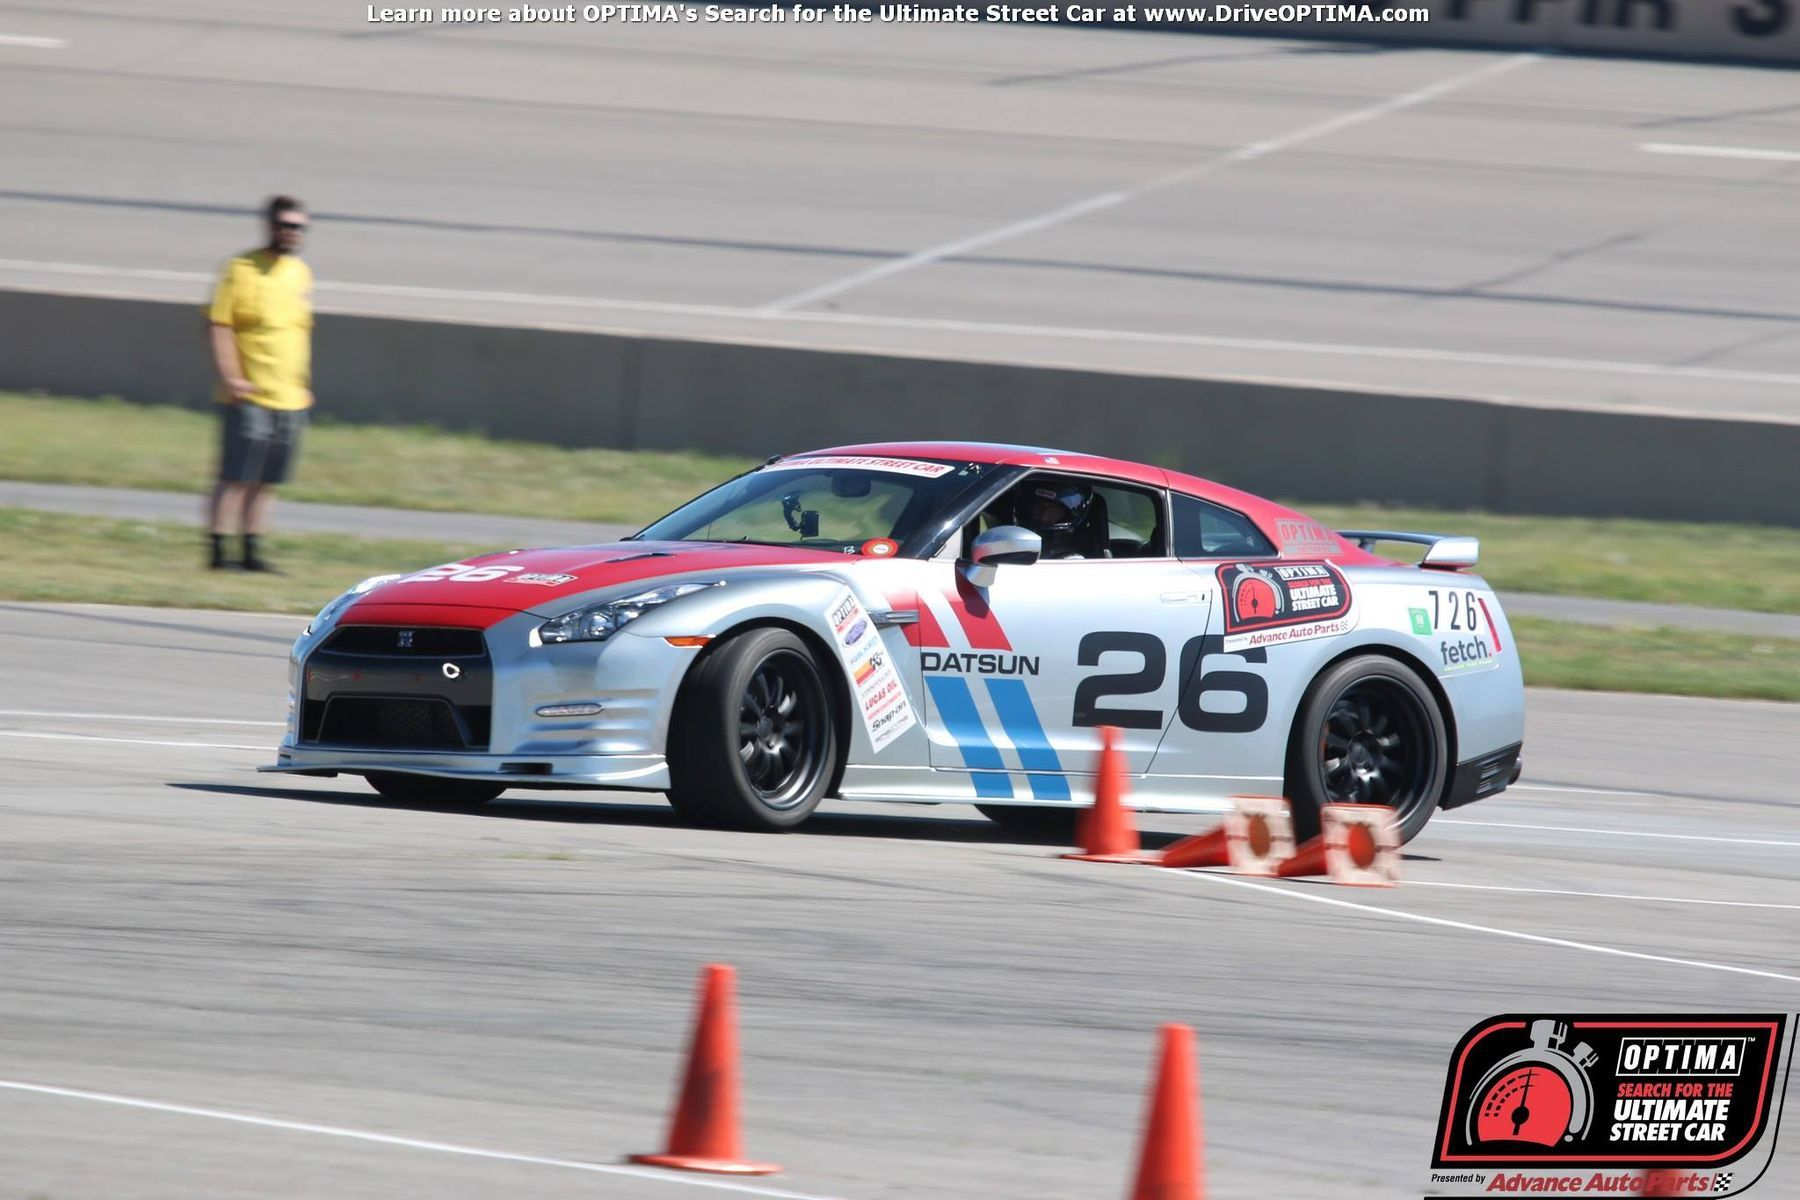 2017 Nissan GT-R | Steve Kepler Clinches 2016 USCA GTS Points Championship in Nissan GT-R on Forgeline GZ3 Wheels